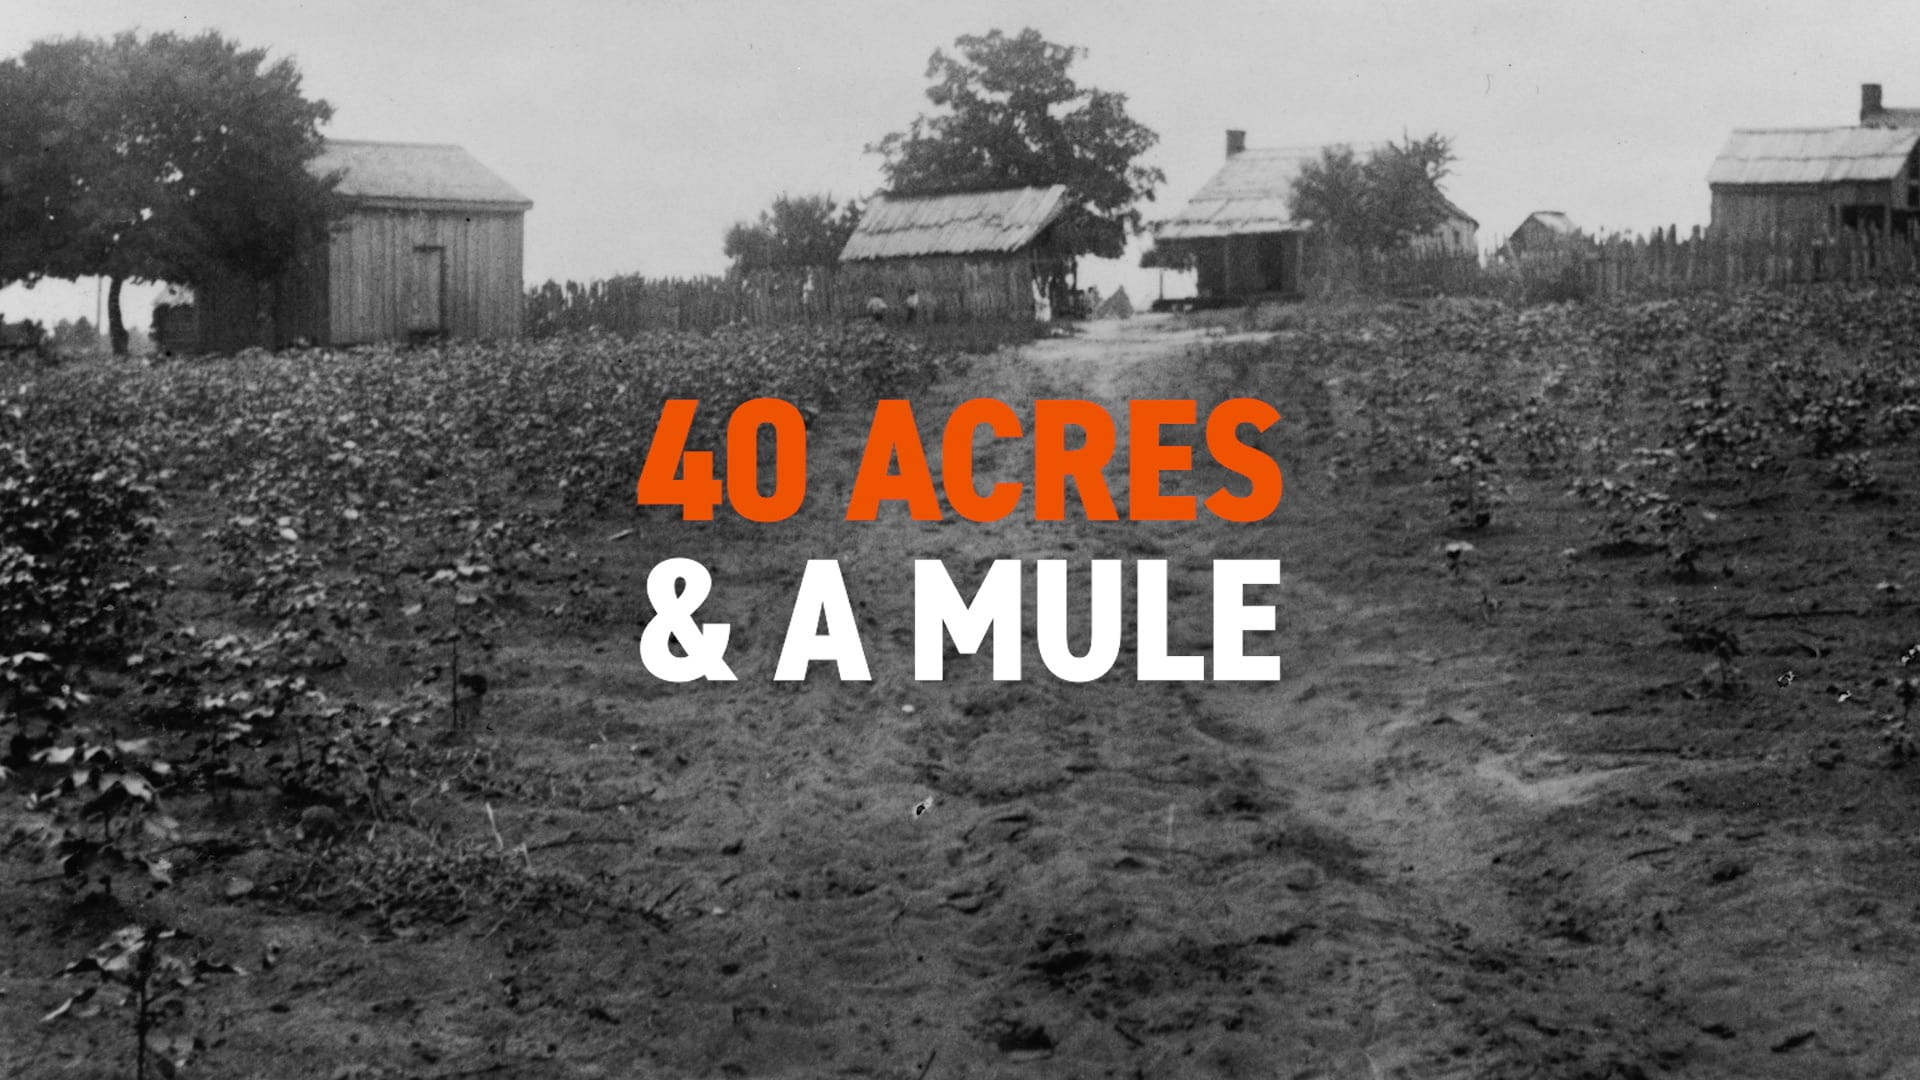 Land: Giving Rise to the Famous Phrase 40 Acres & a Mule